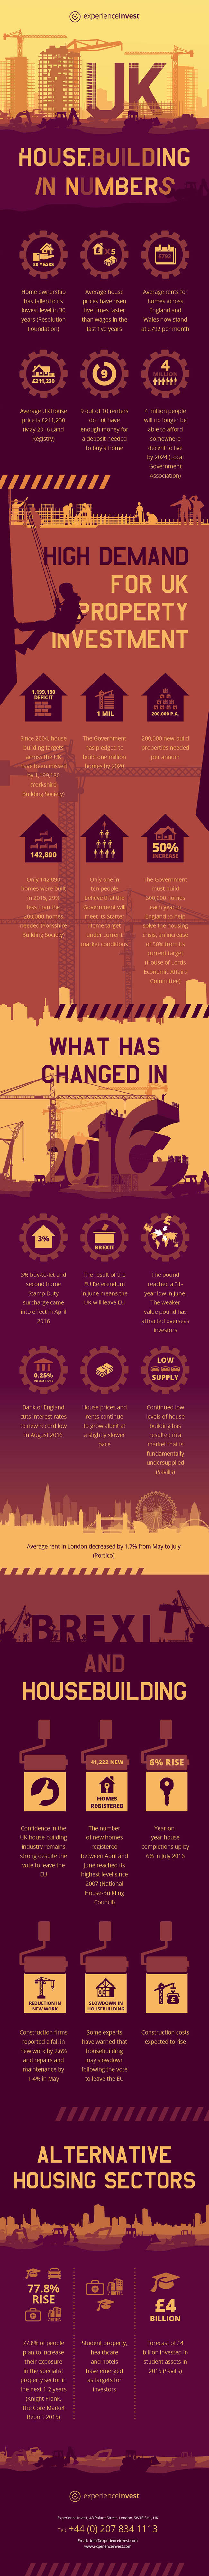 Experience Invest housebuilding infographic